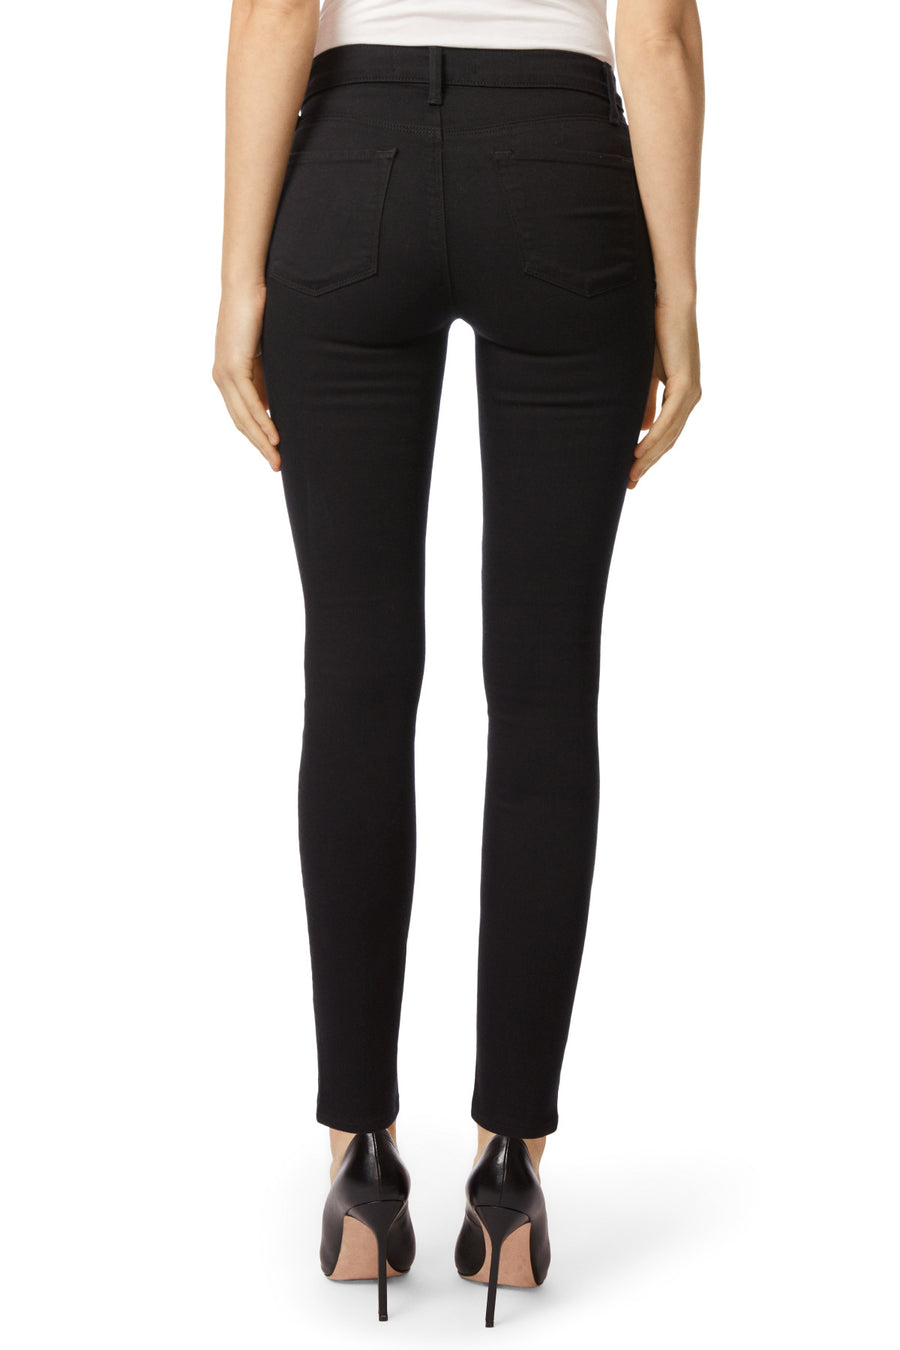 J Brand Maria High Rise Skinny in Seriously Black